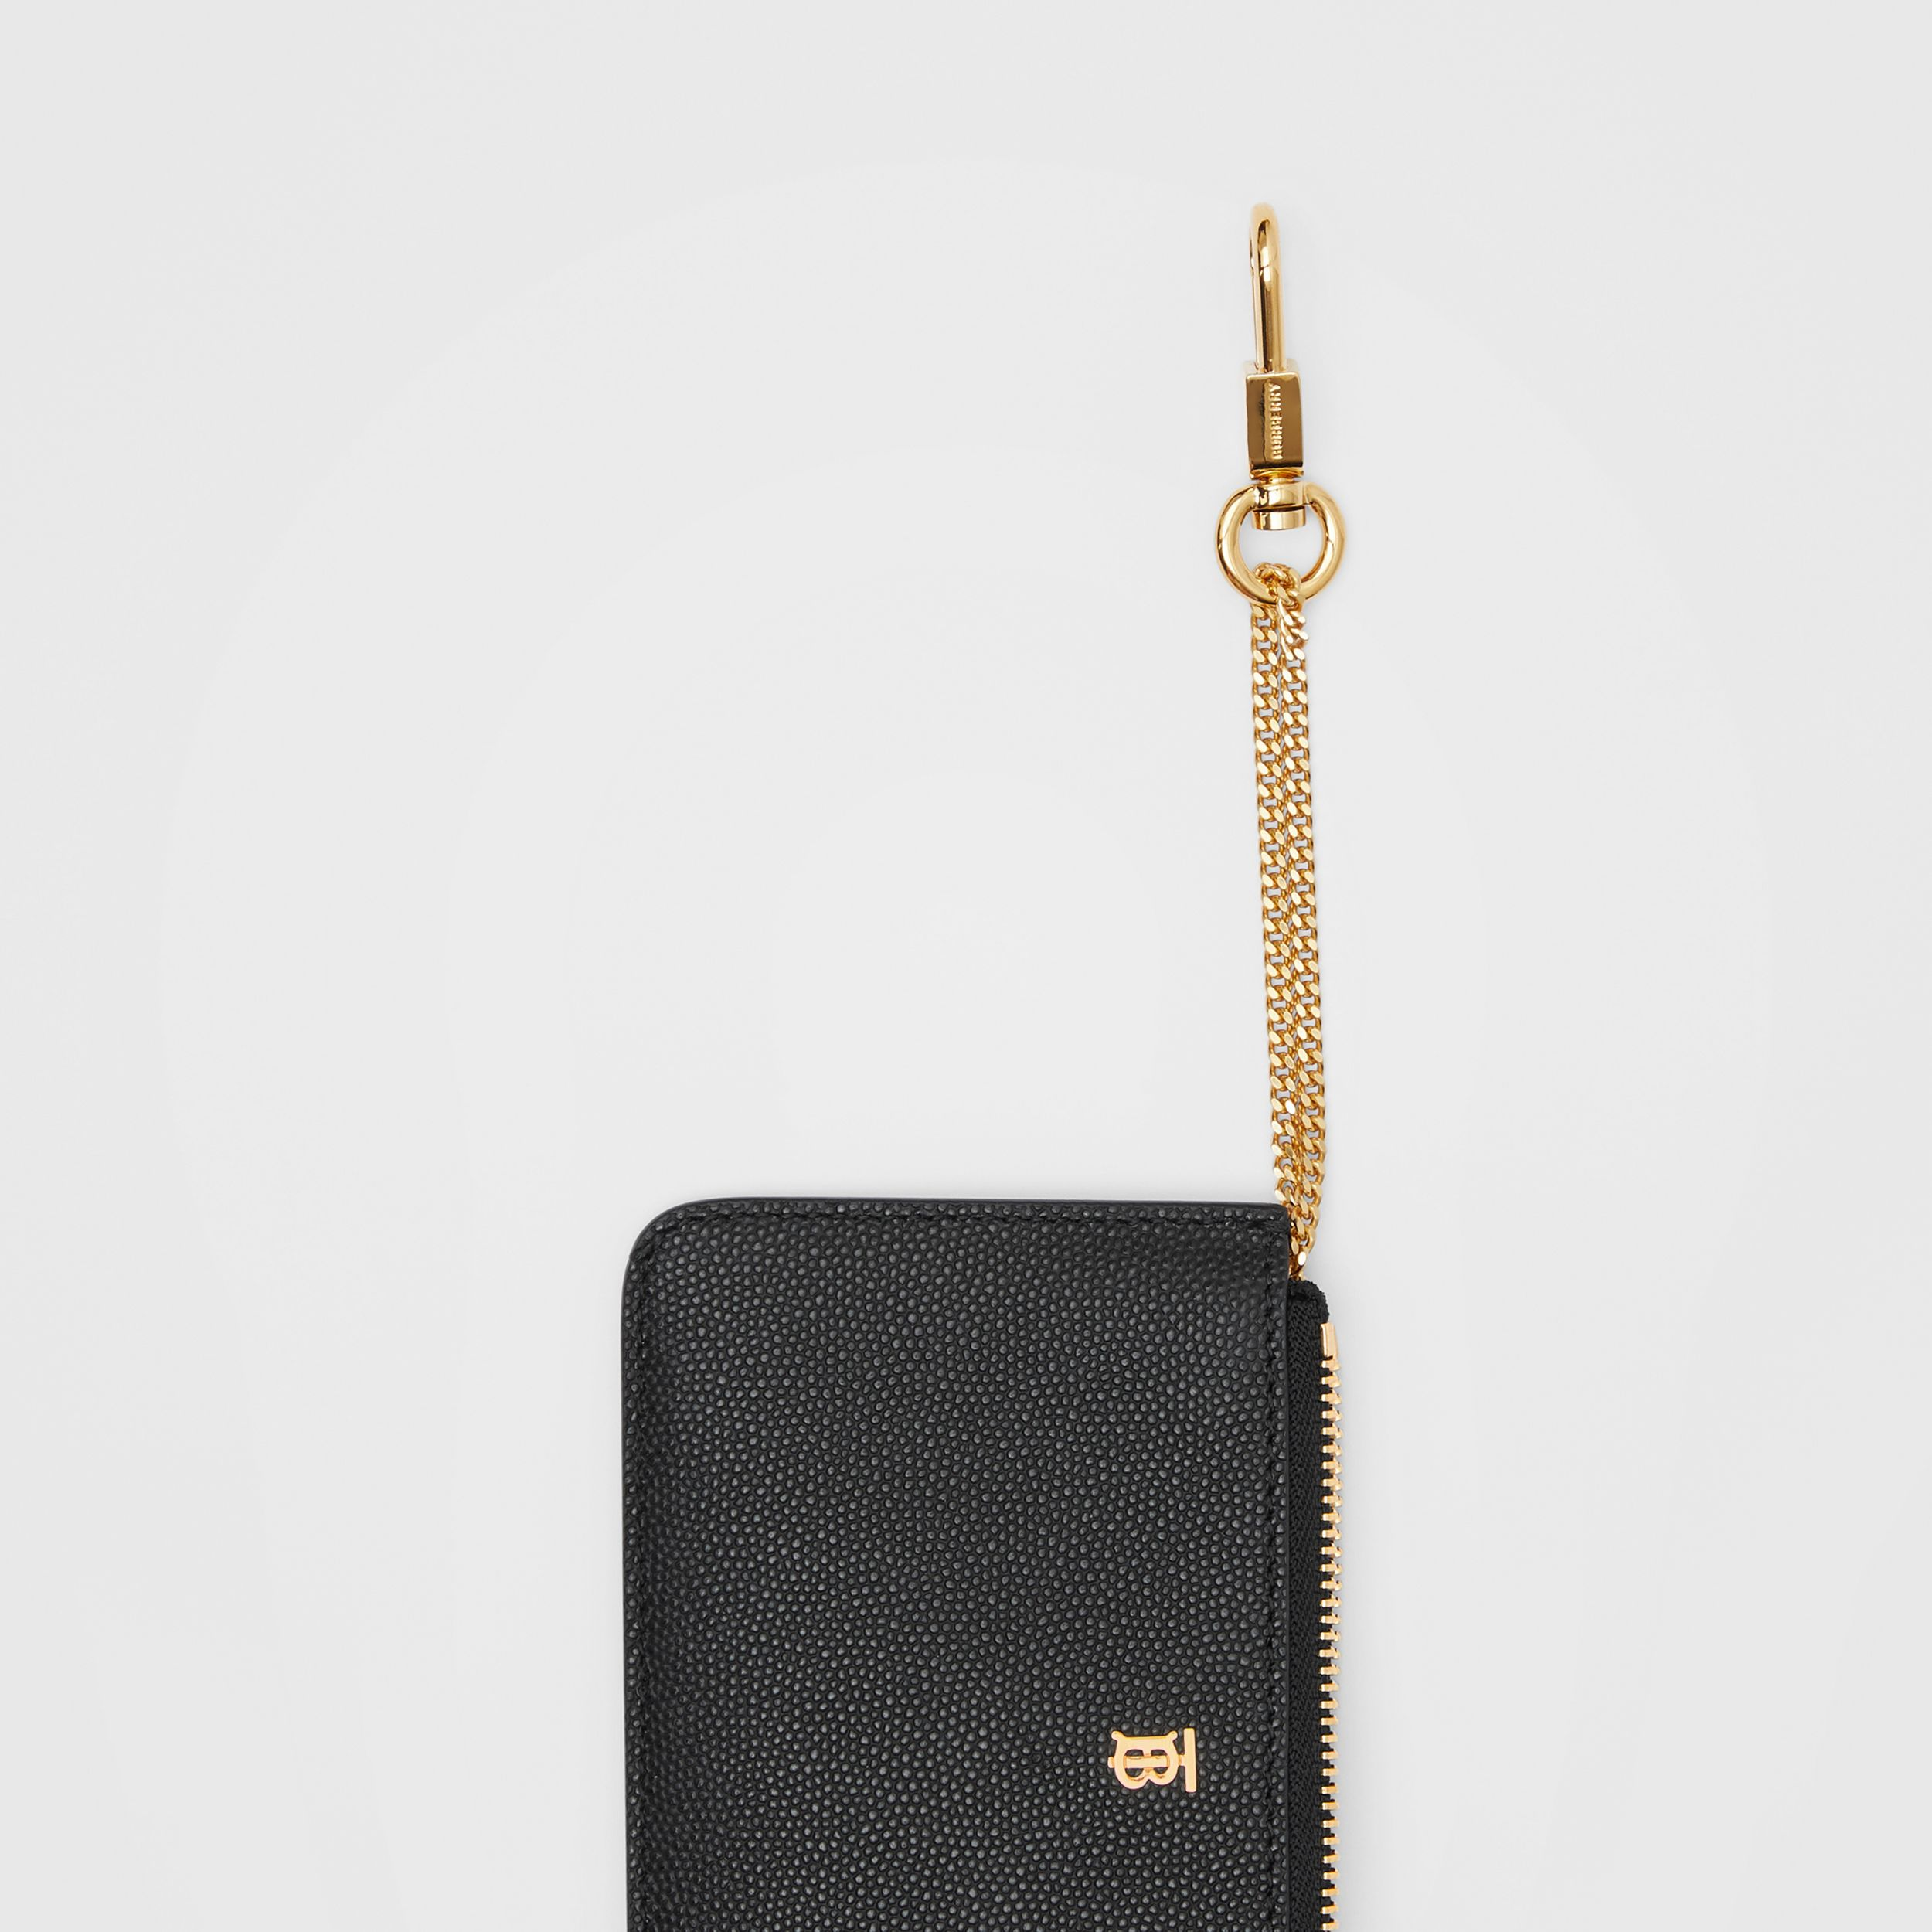 Monogram Motif Grainy Leather Zip Coin Case in Black - Women | Burberry - 2